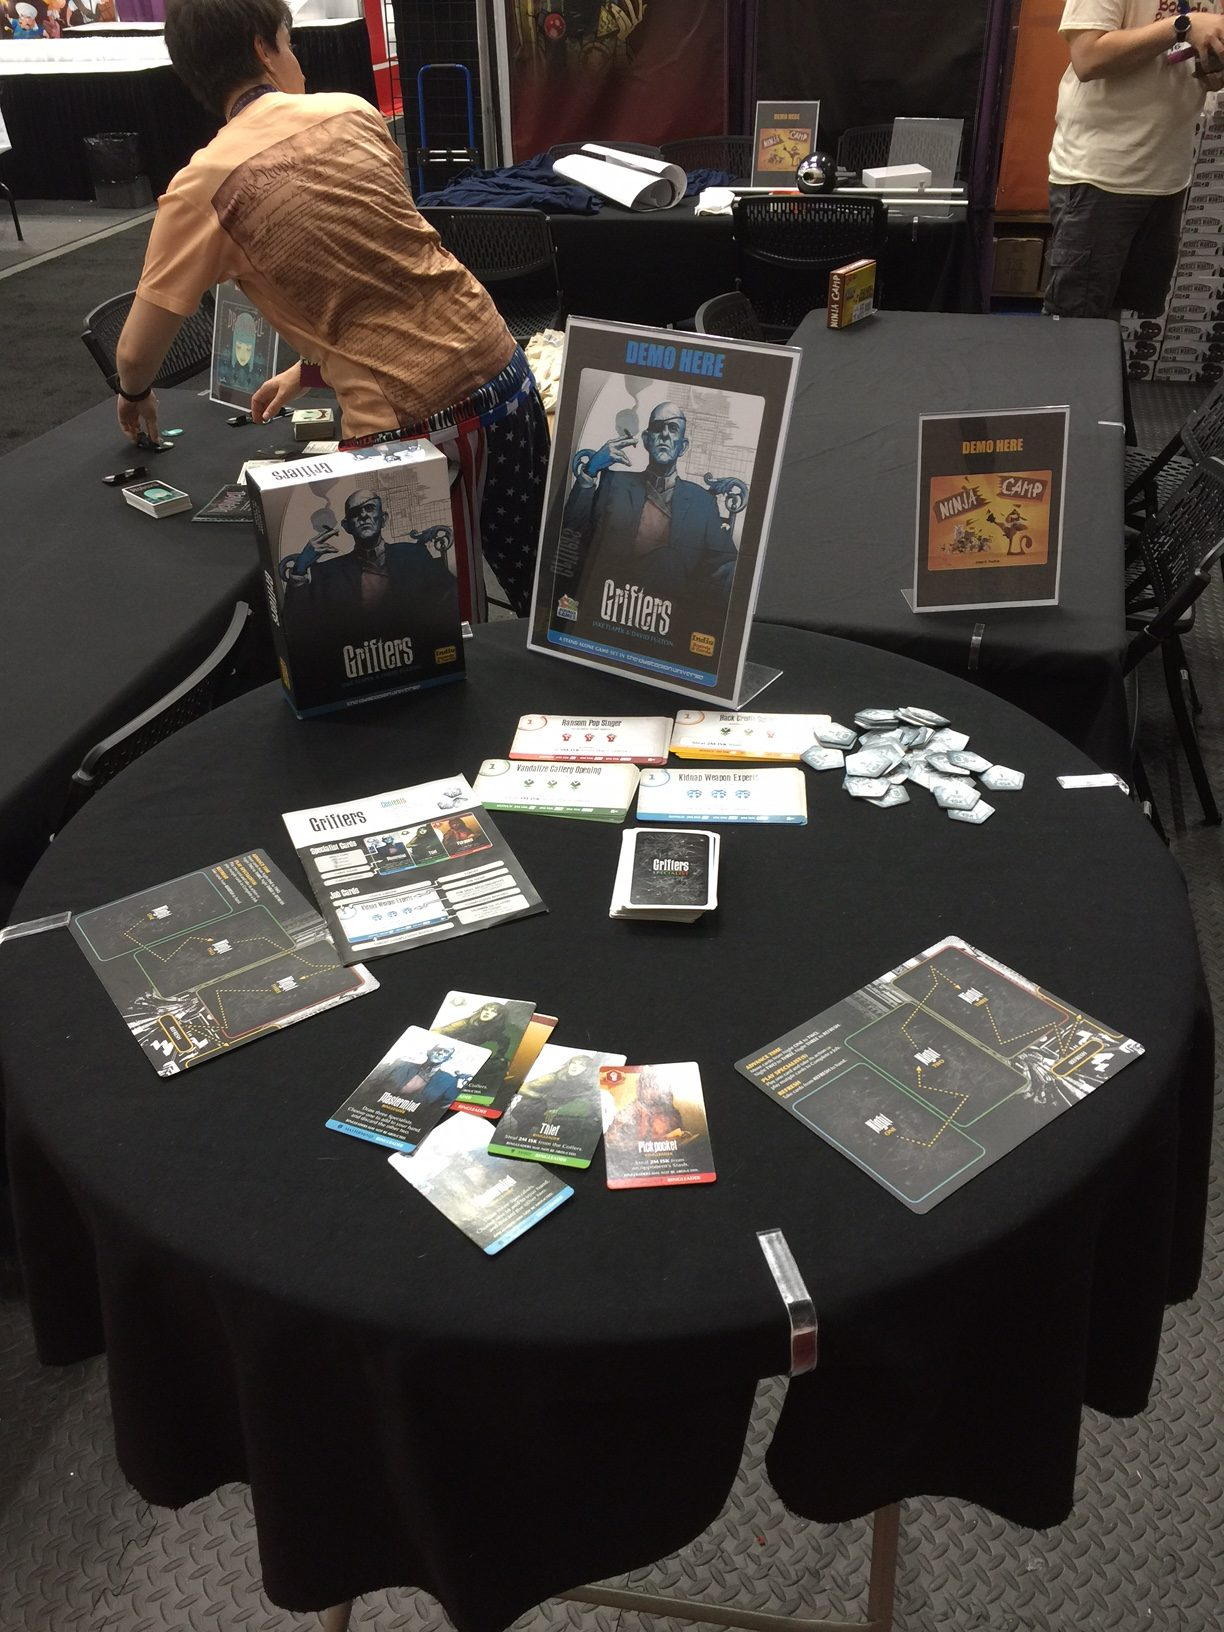 Grifters was also demoed at the Action Phase booth.